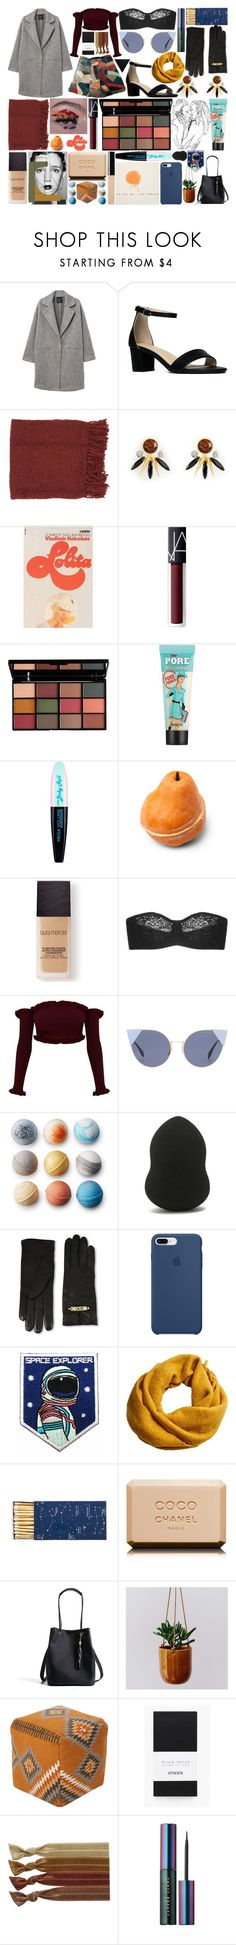 """""""A hint of rose and a smile..."""" by andreab6 ❤ liked on Polyvore featuring MANGO, J. Adams, Surya, Henri Bendel, CO, NARS Cosmetics, NYX, Benefit, L'Oréal Paris and Laura Mercier"""